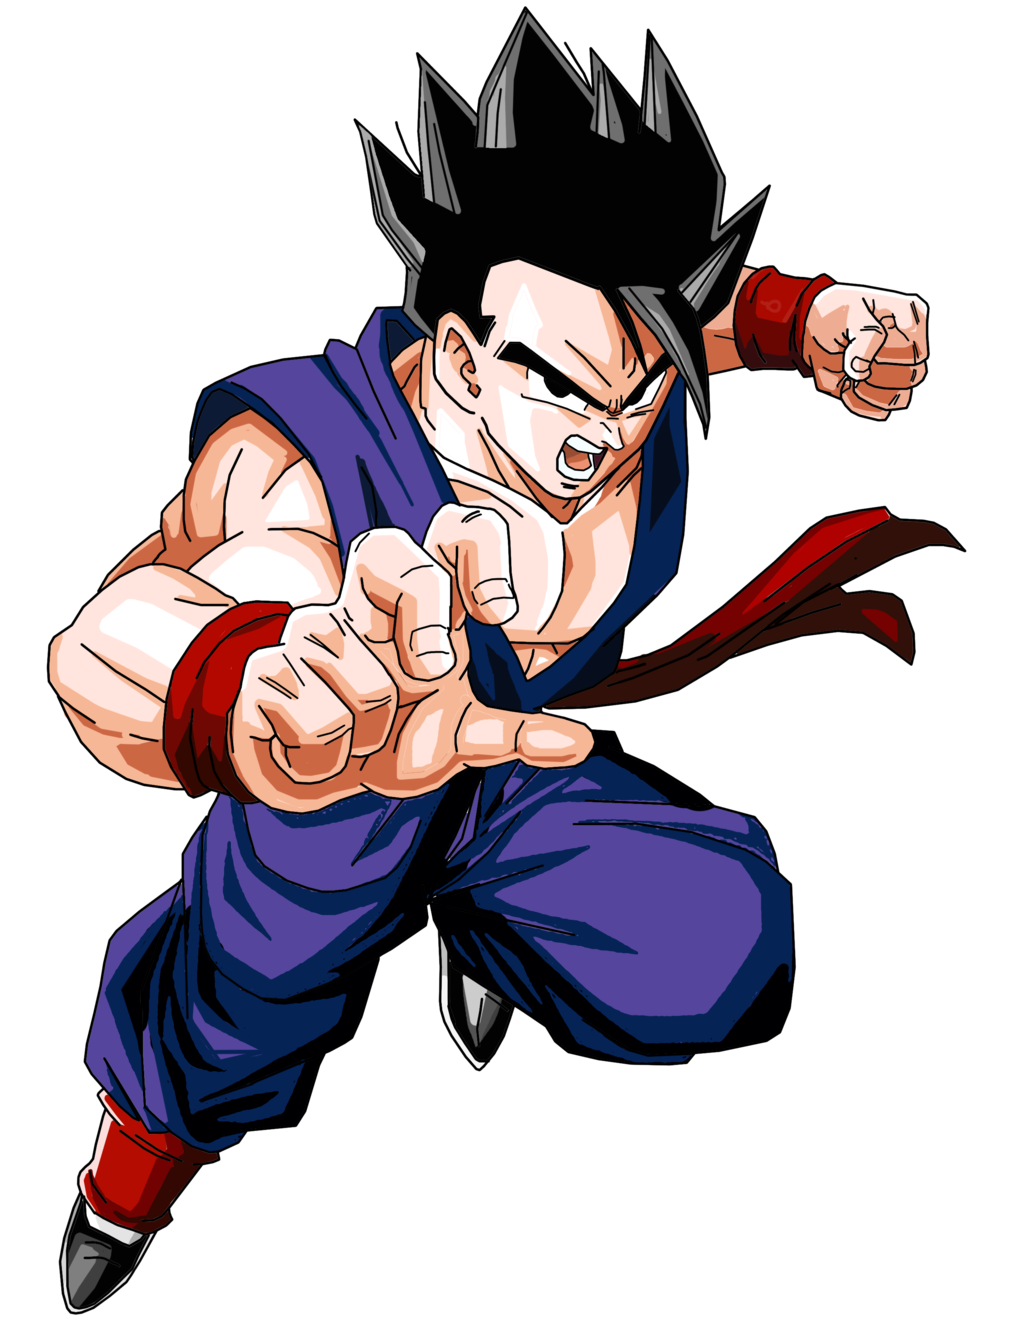 Son gohan wiki dragon ball fandom powered by wikia - Son gohan super saiyan 4 ...